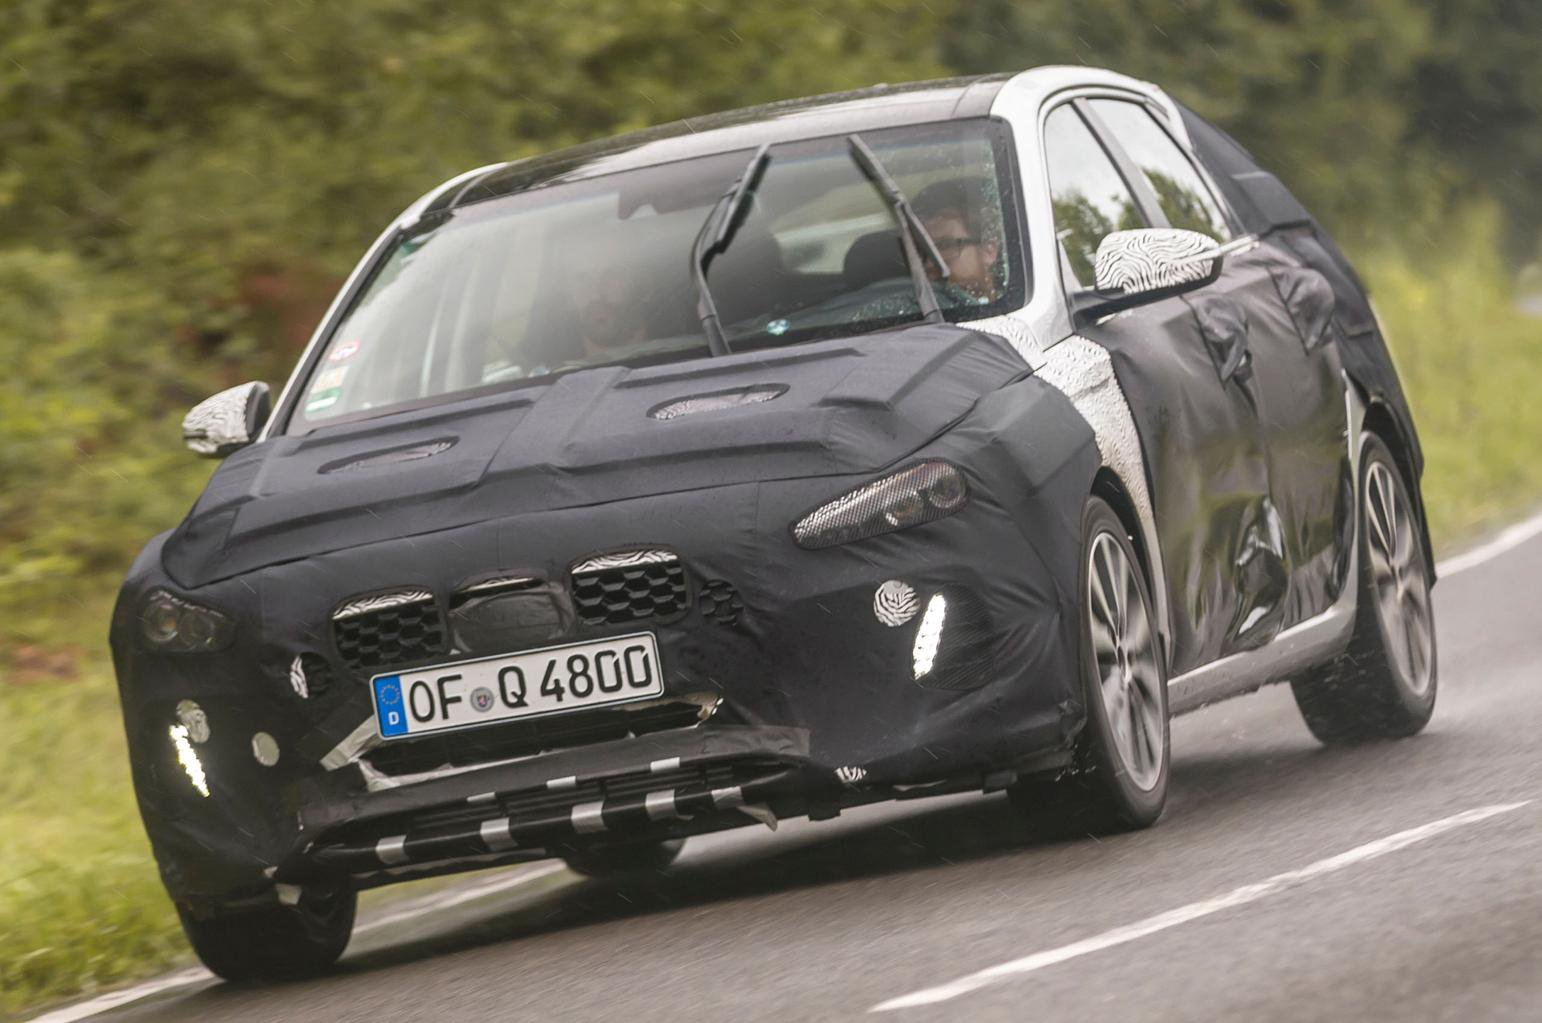 2017 Hyundai i30 1.4 Turbo prototype review